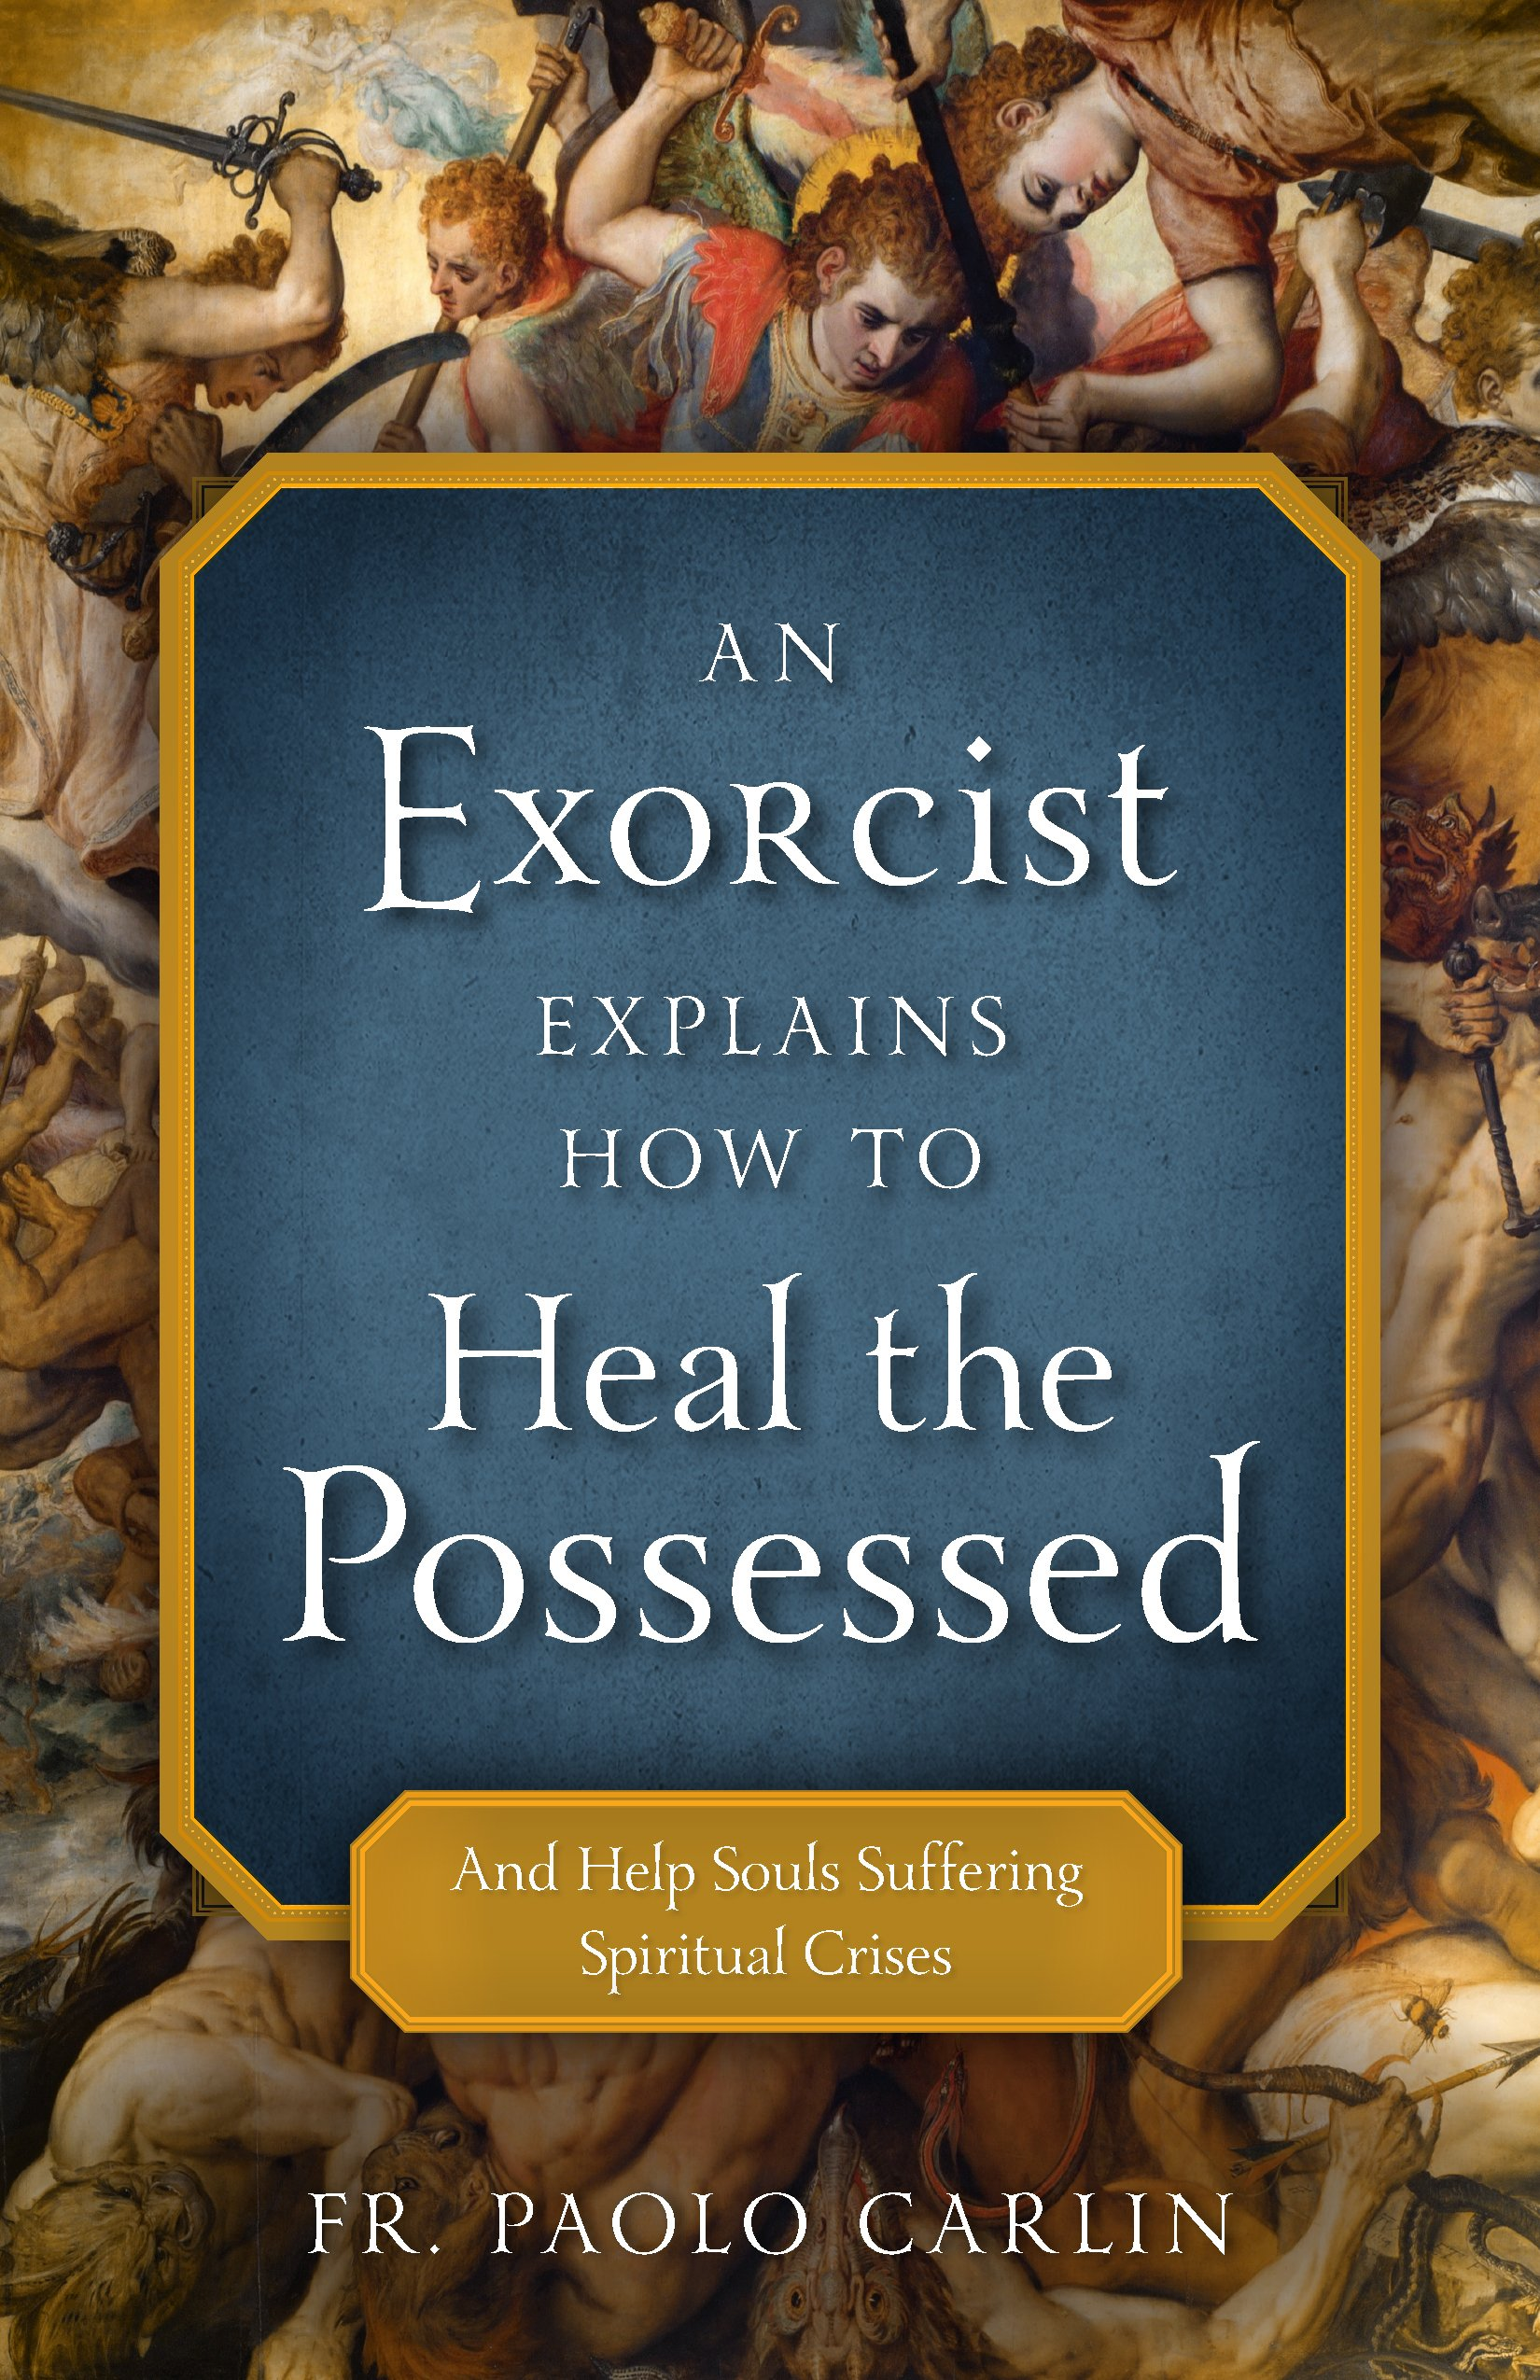 An Exorcist Explains How to Heal the Possessed: And Help Souls Suffering Spiritual Crises PDF